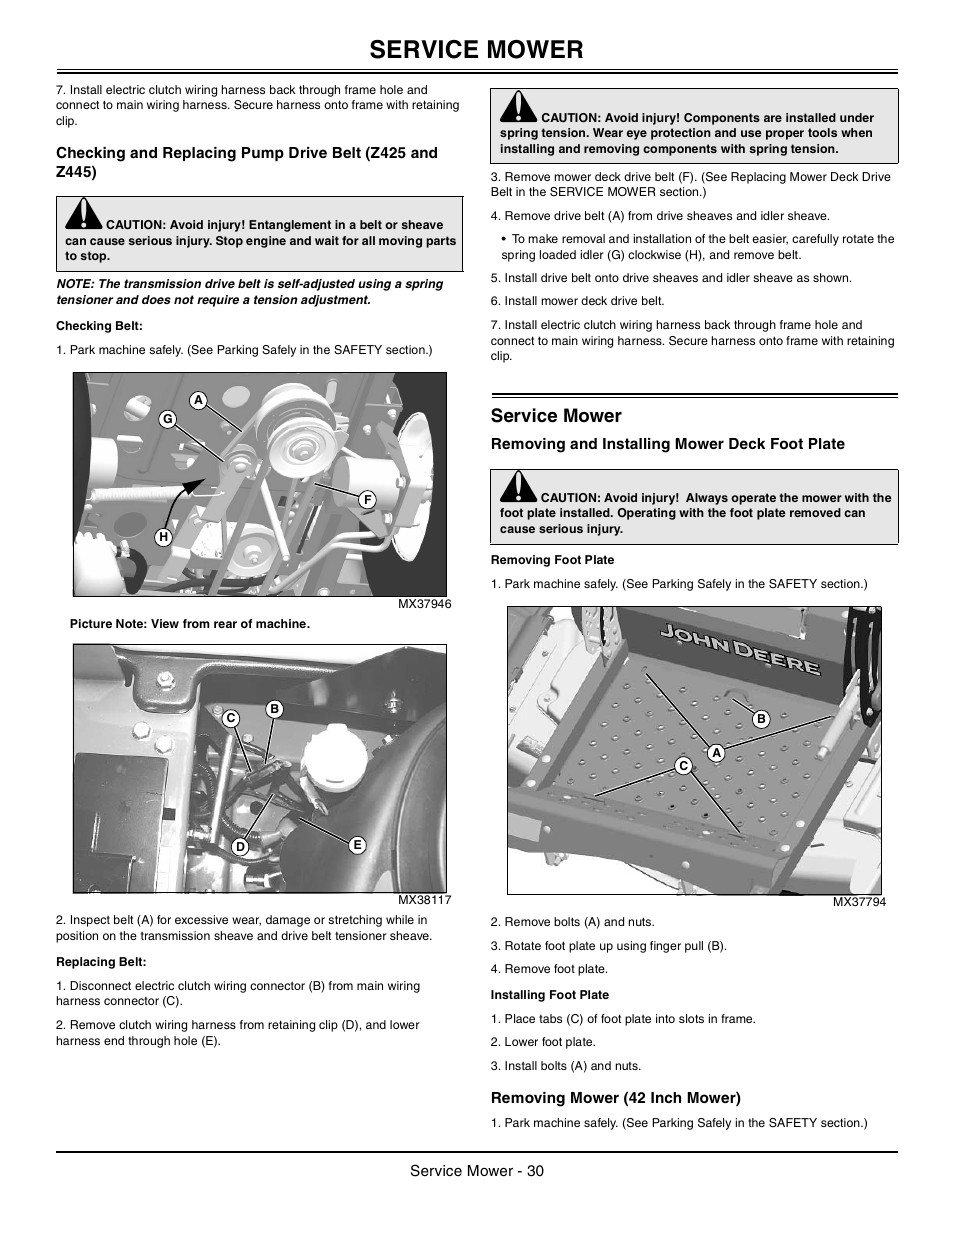 z225 wiring diagram z225 image wiring diagram checking belt replacing belt service mower john deere z425 on z225 wiring diagram